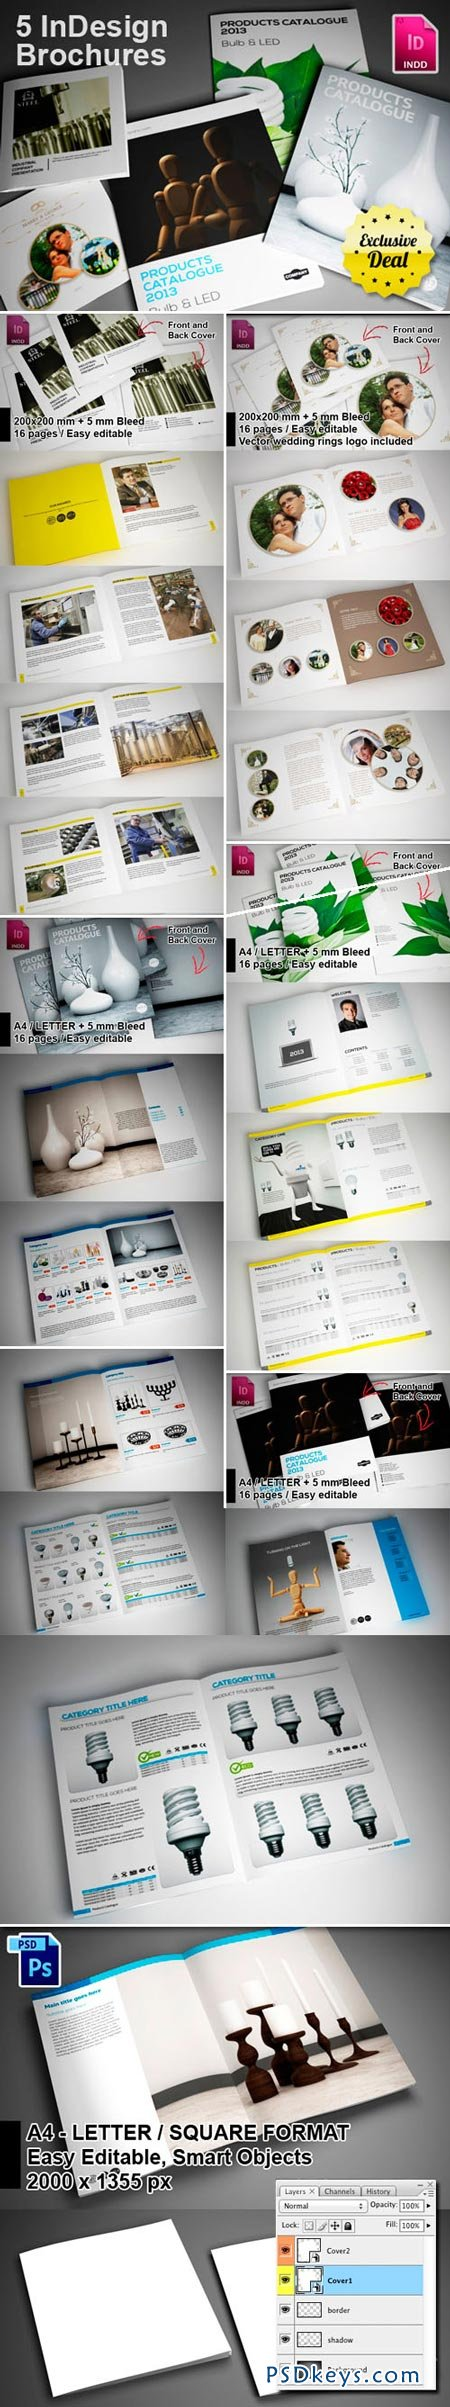 5 InDesign Brochure Templates » Free Download Photoshop Vector Stock ...